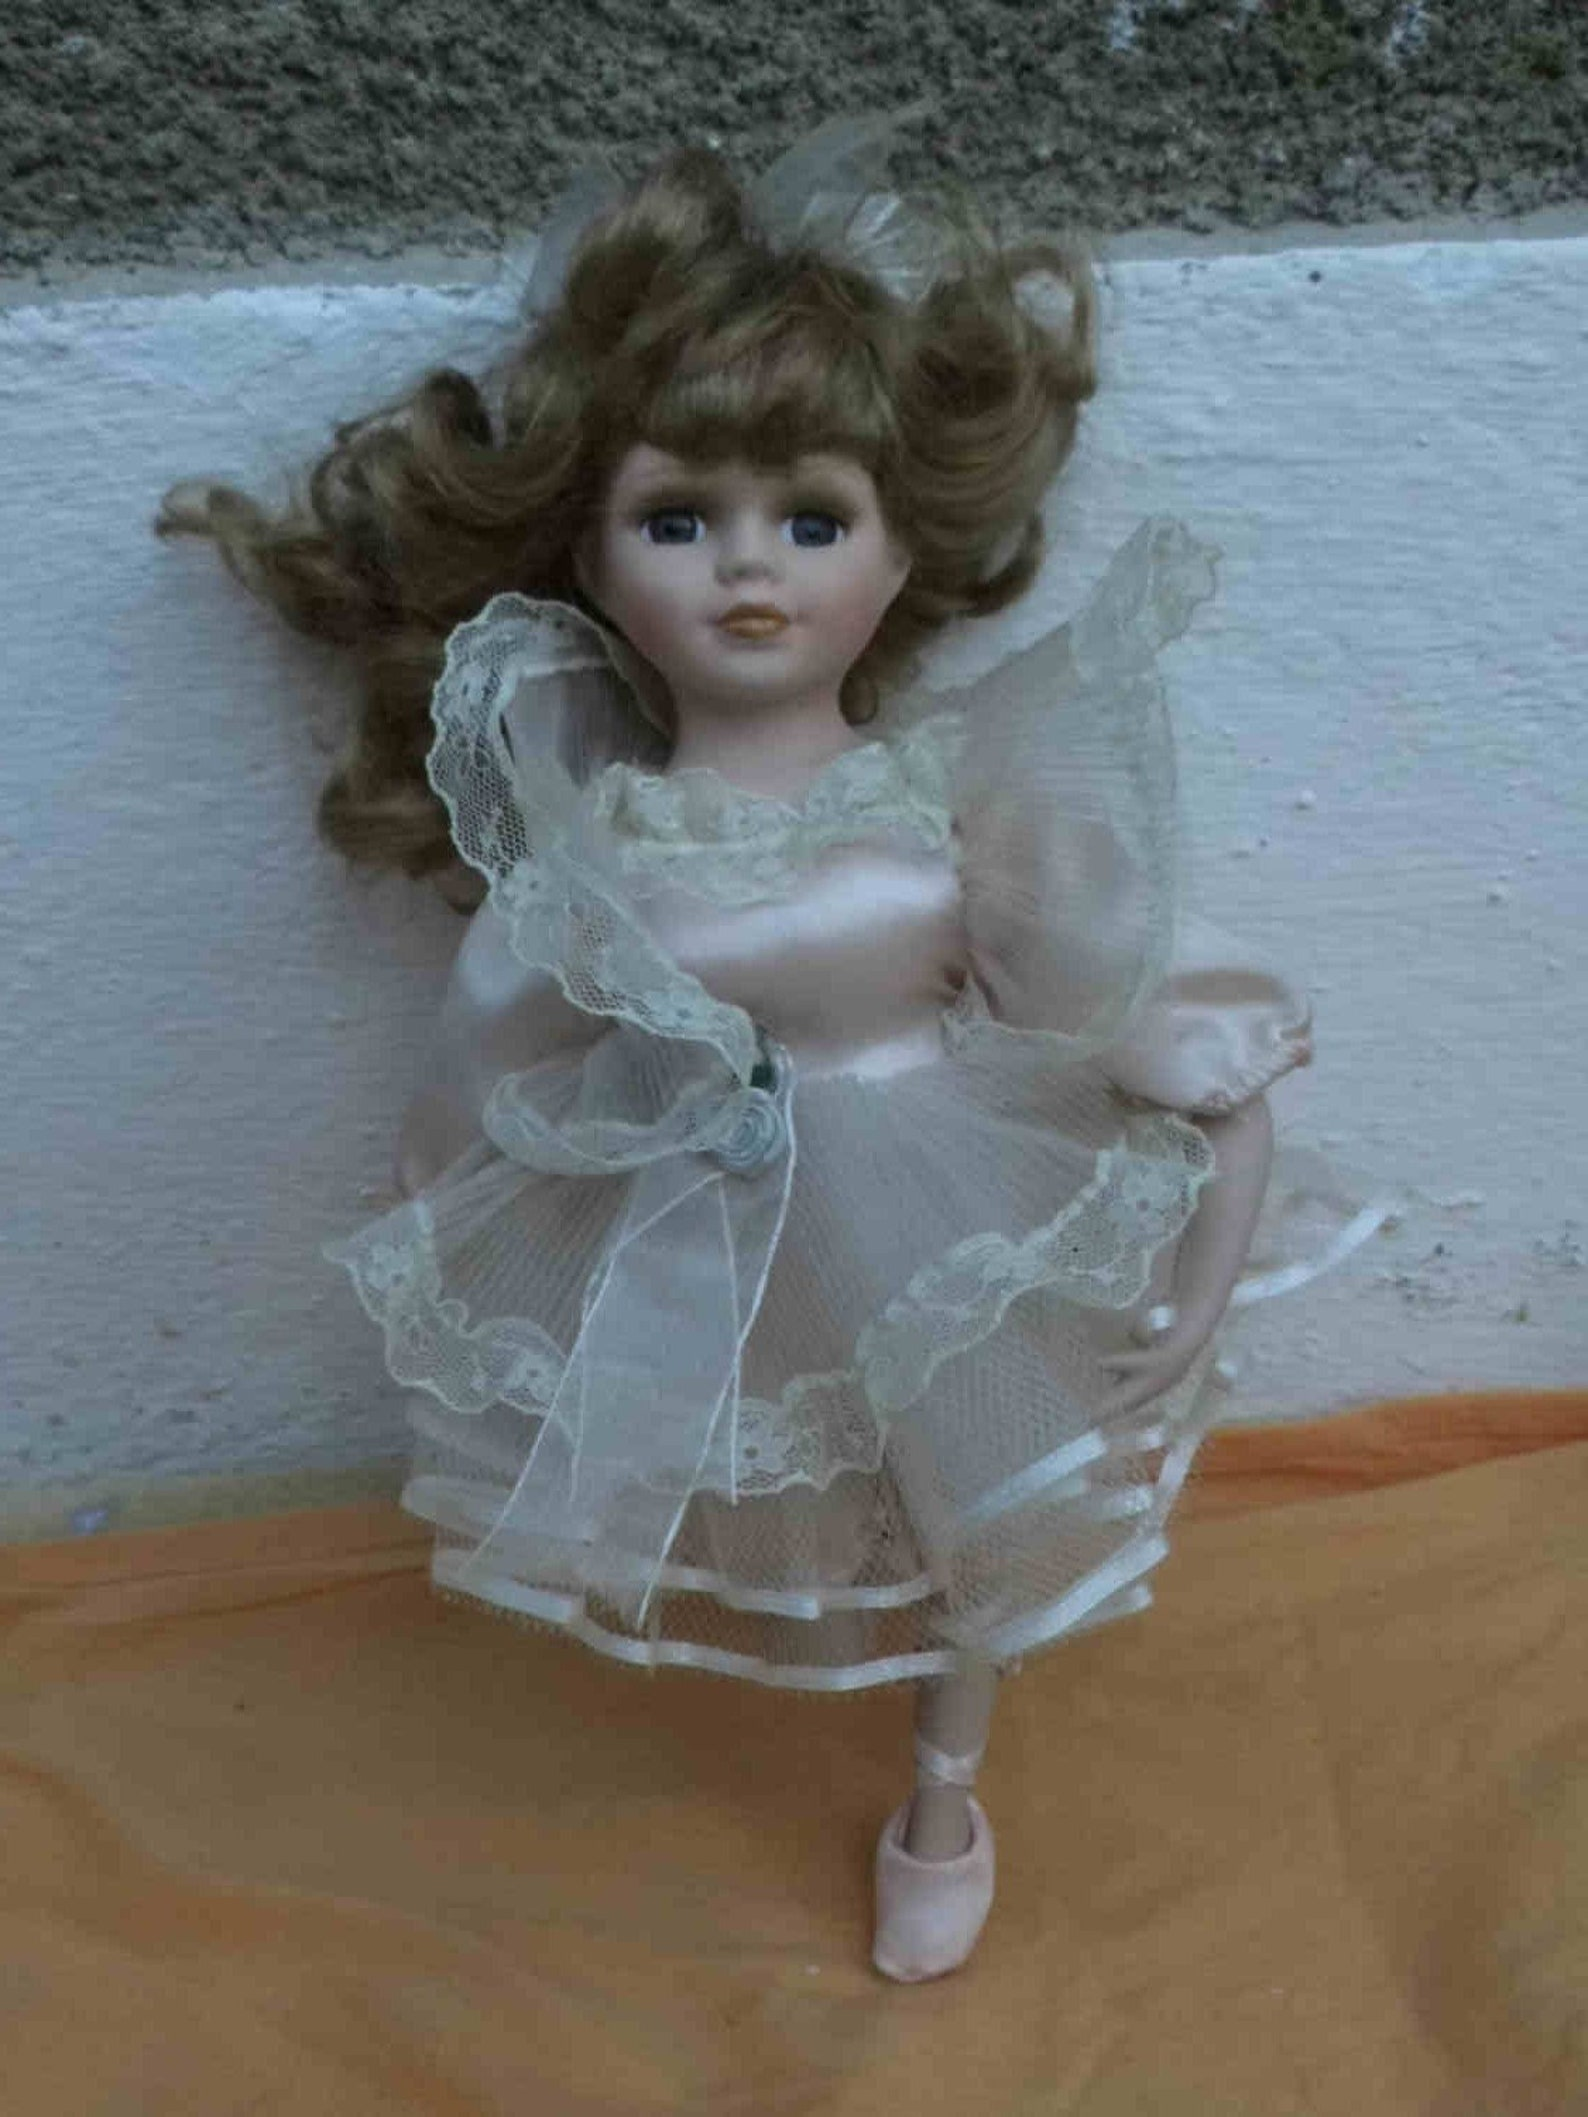 vintage french ballet dancer doll, 13inches height, frilly dress, white satin pantaloons, ballet shoes rigid body, pretty hairan